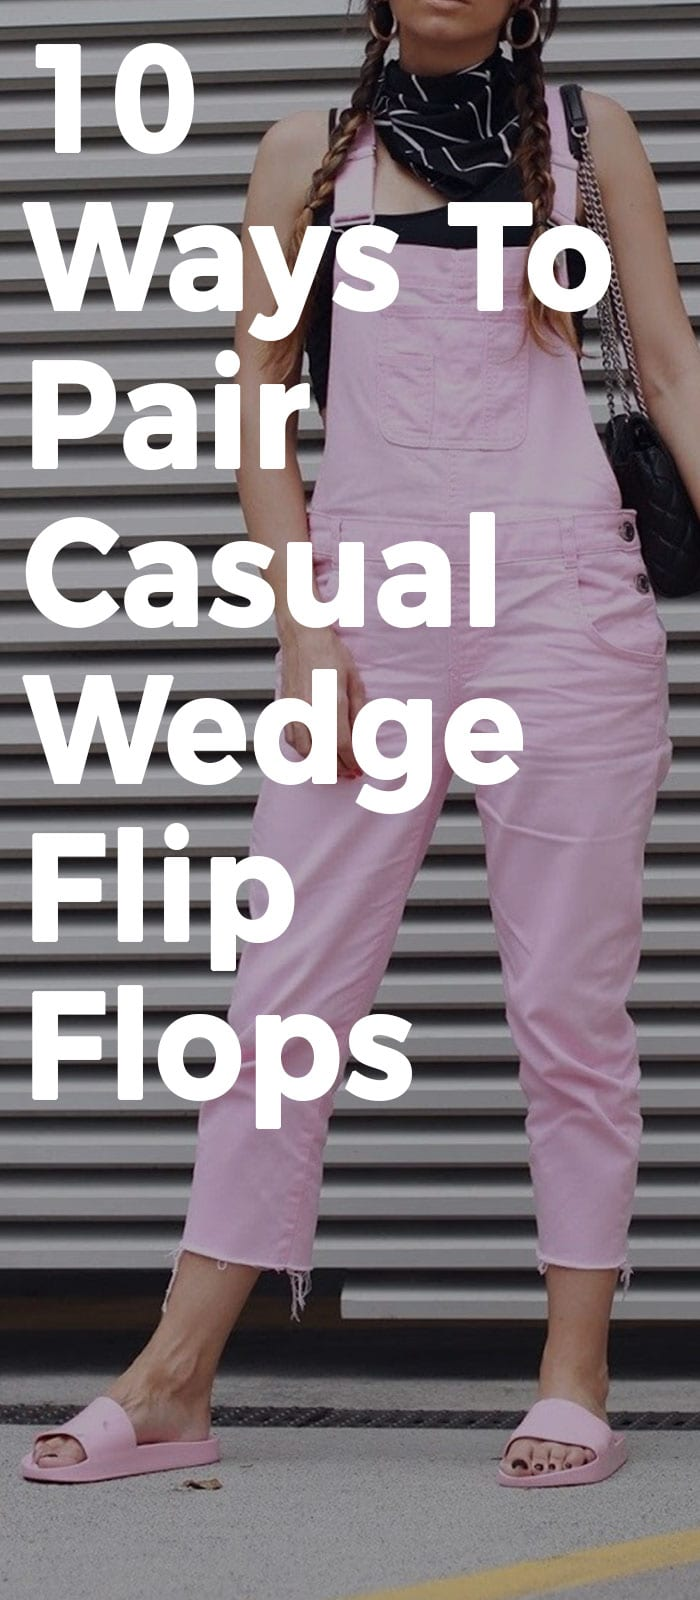 10 Ways To Pair Casual And Simple Wedge Flip Flops!